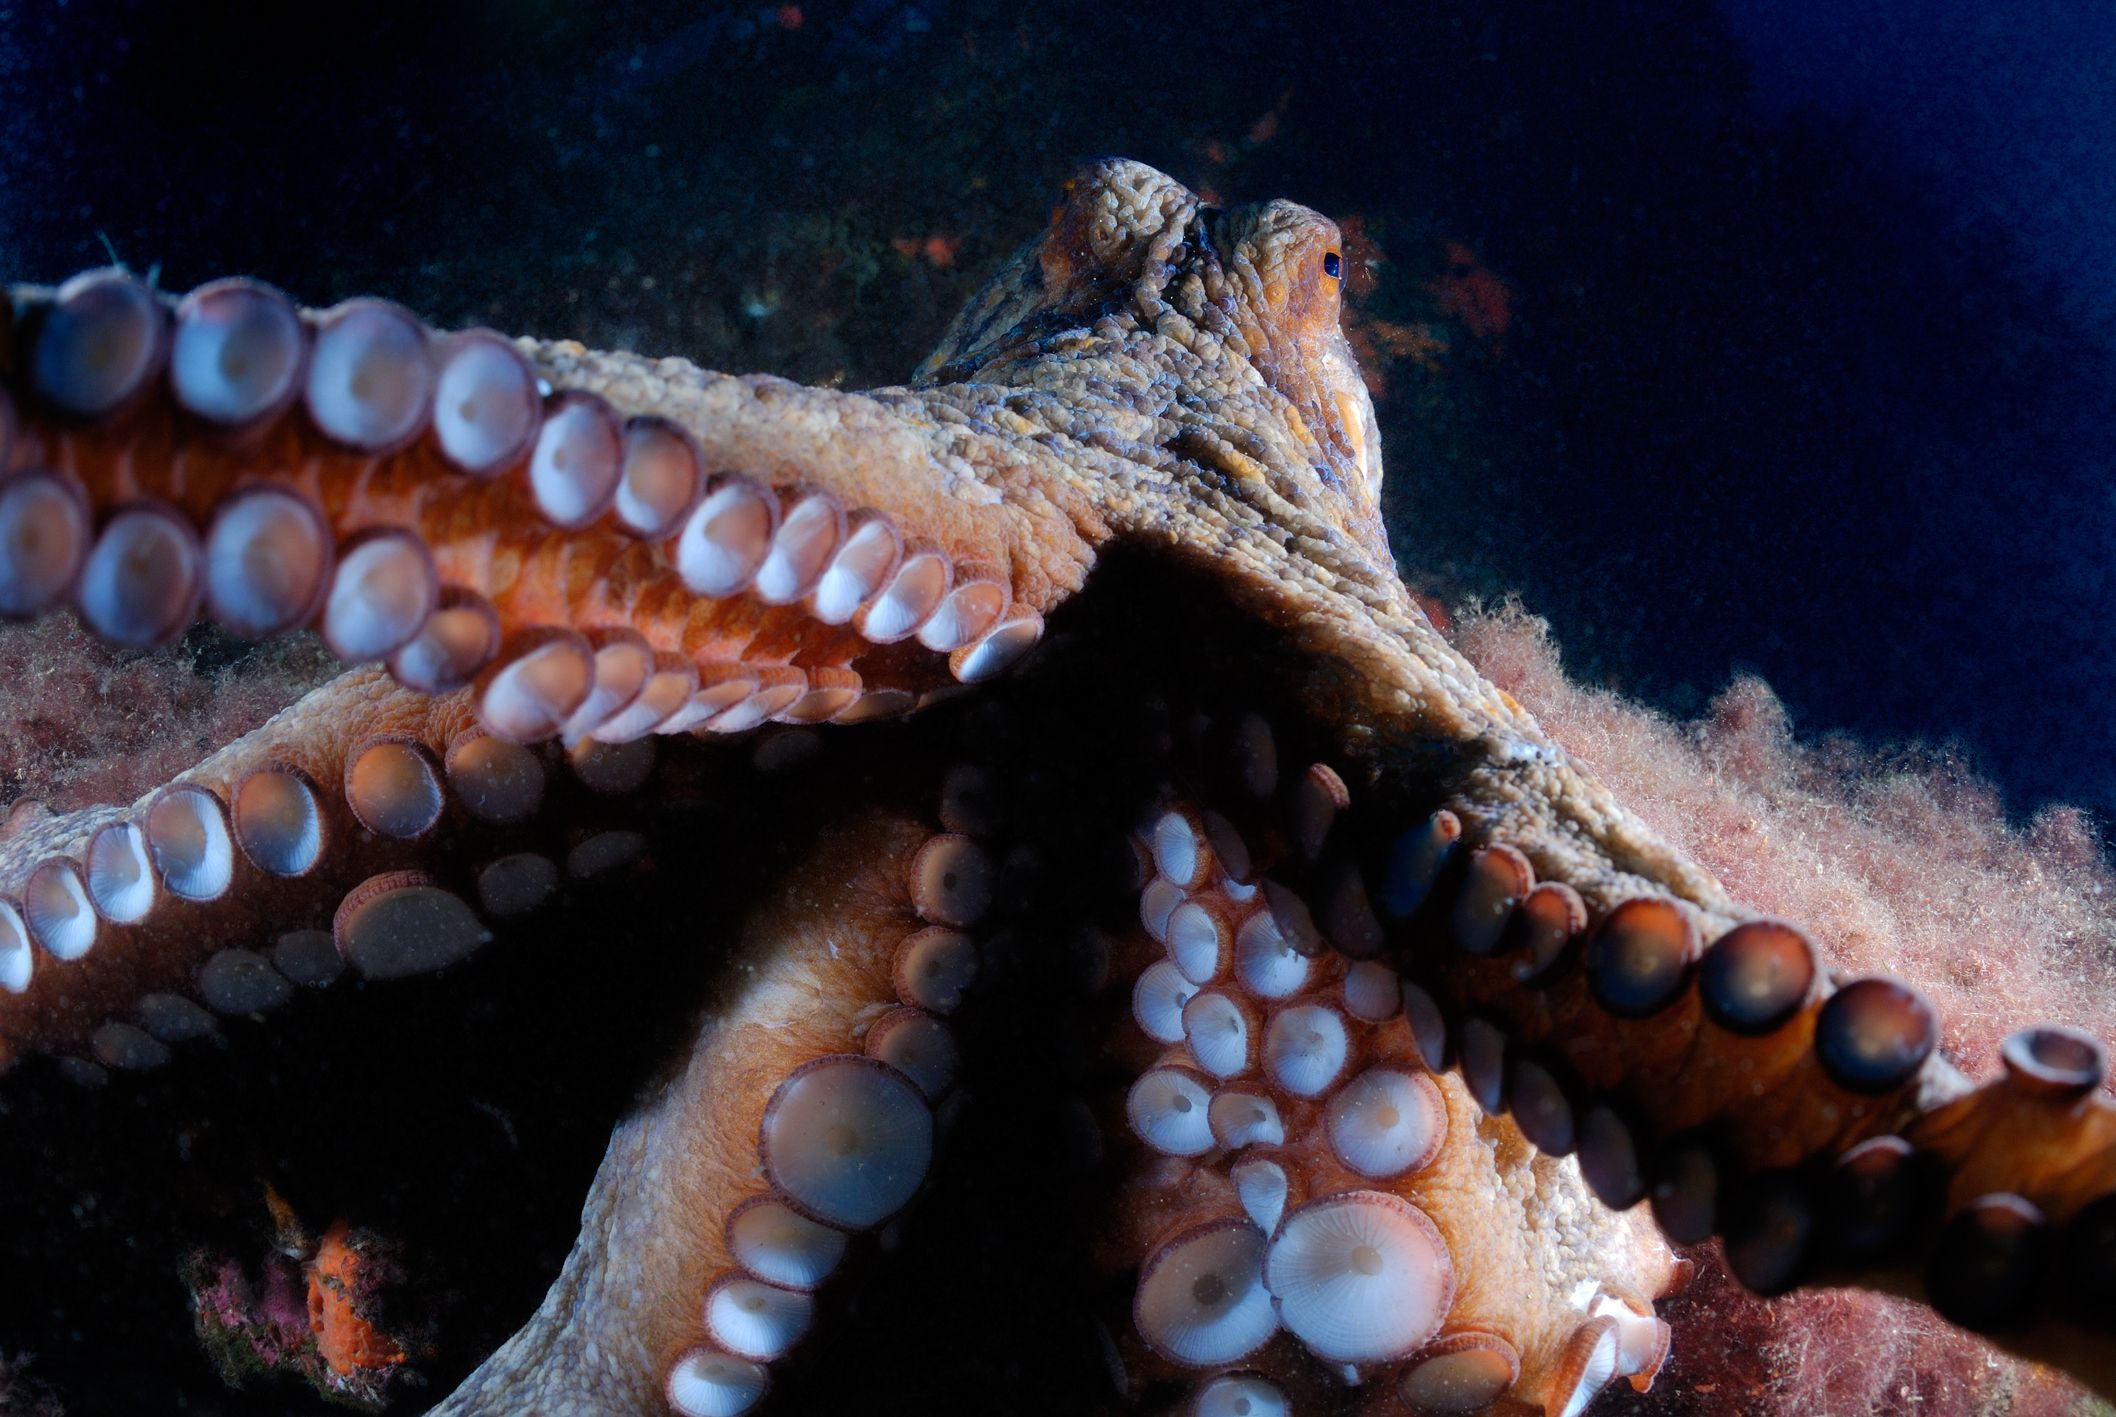 This Is What It Looks Like When Octopuses Attack